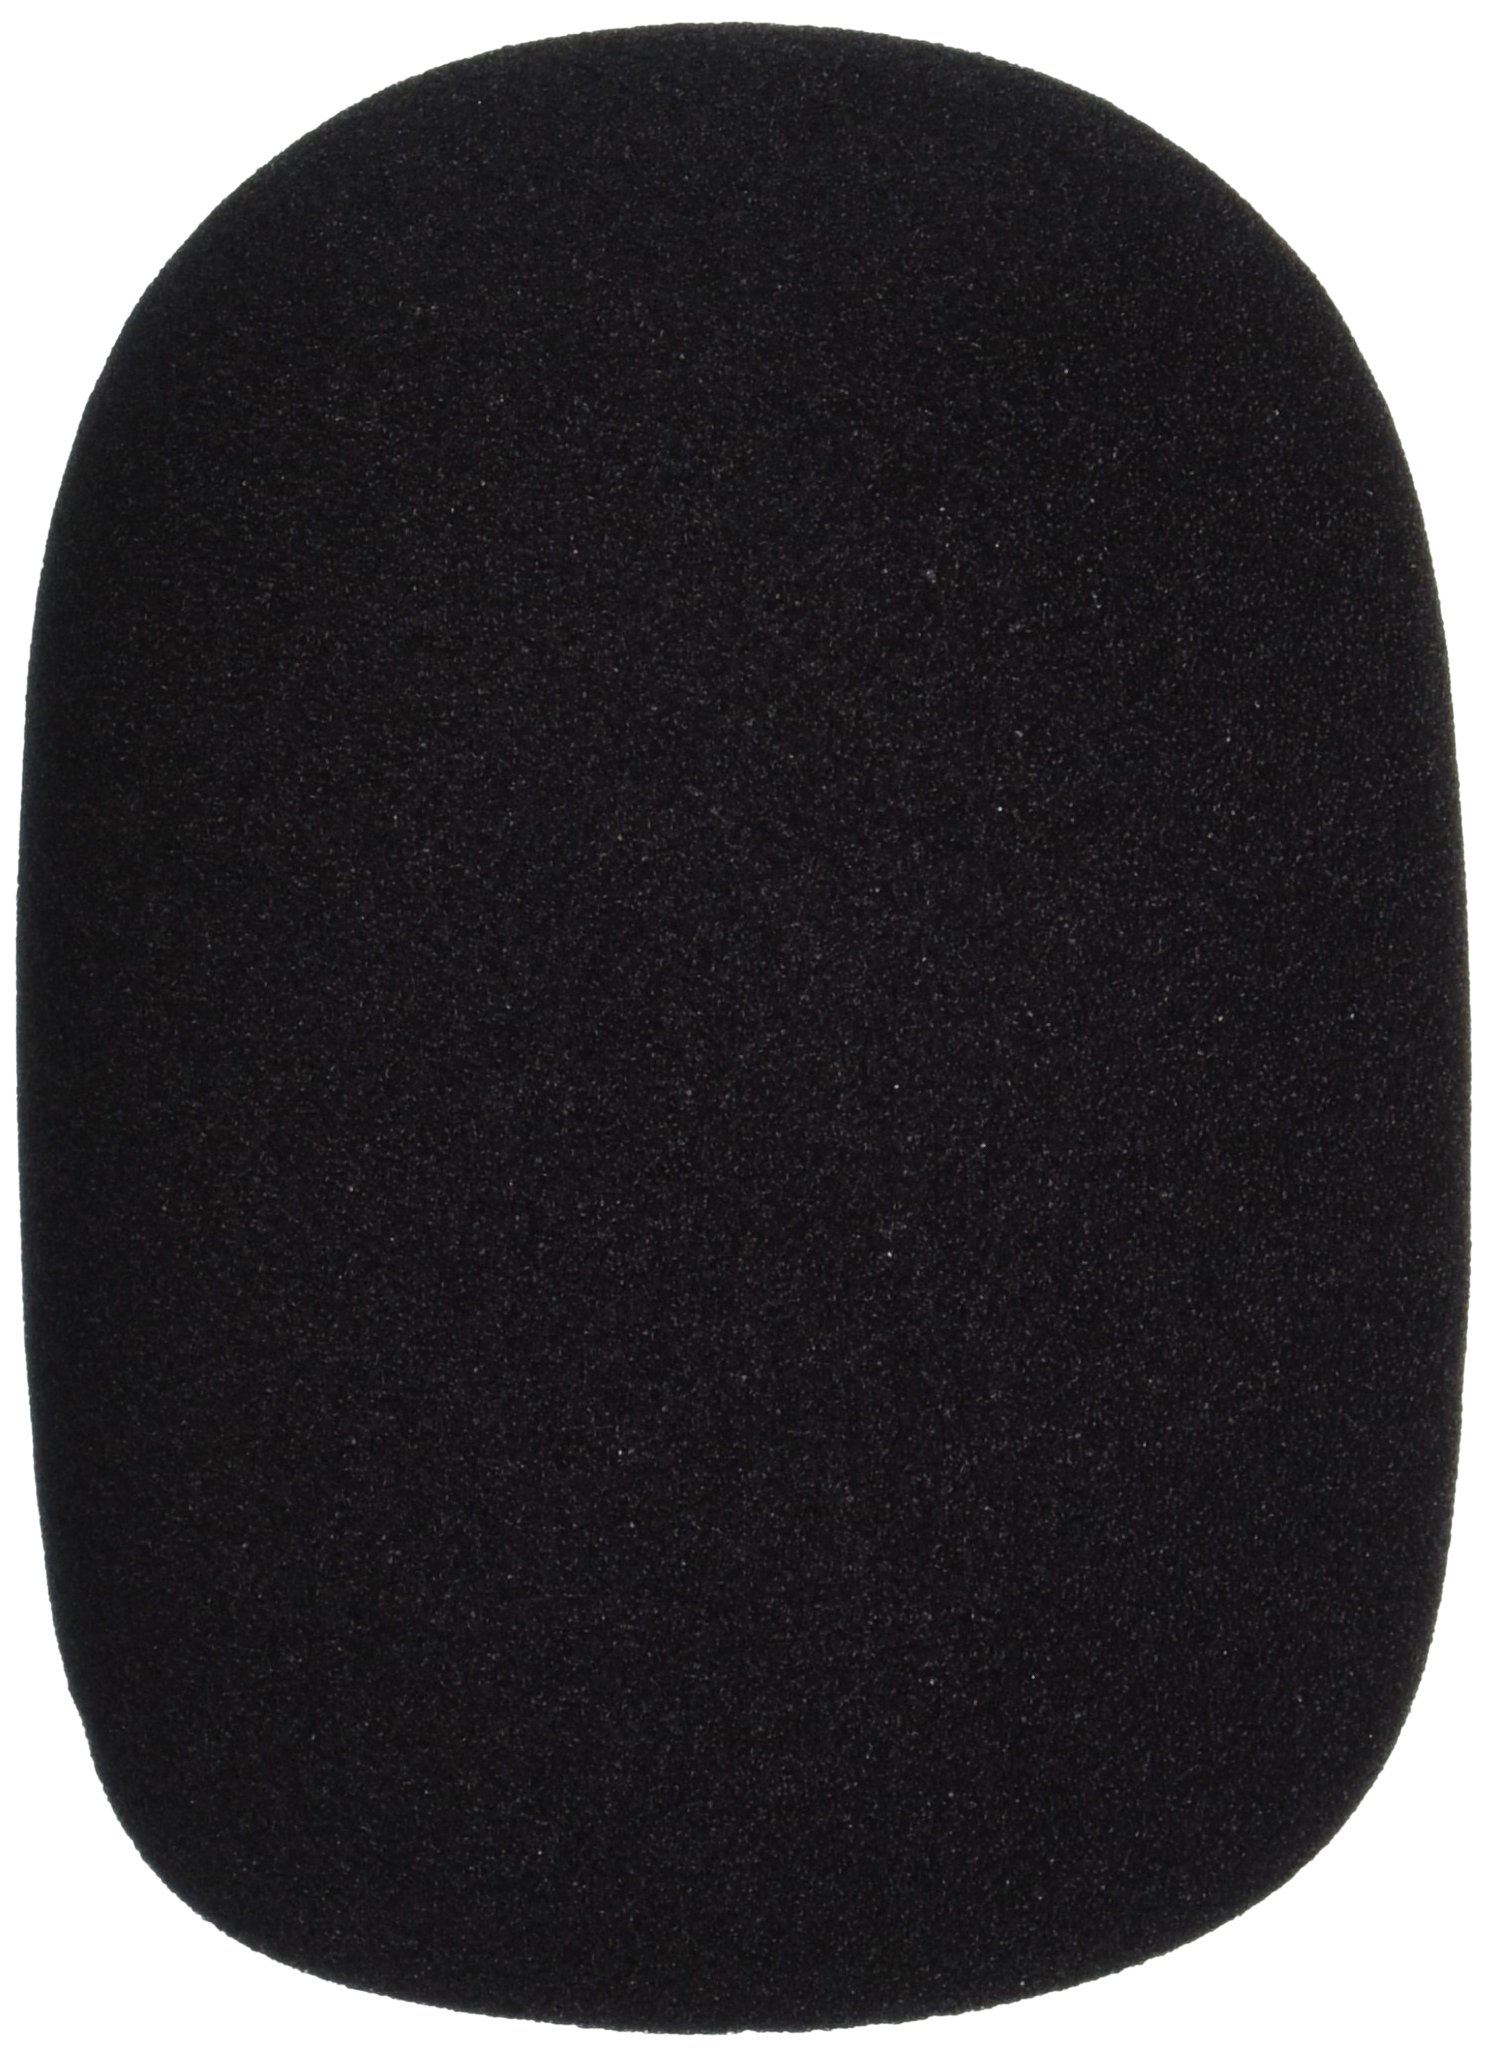 Electro Voice WS-PL2 Foam Windscreen